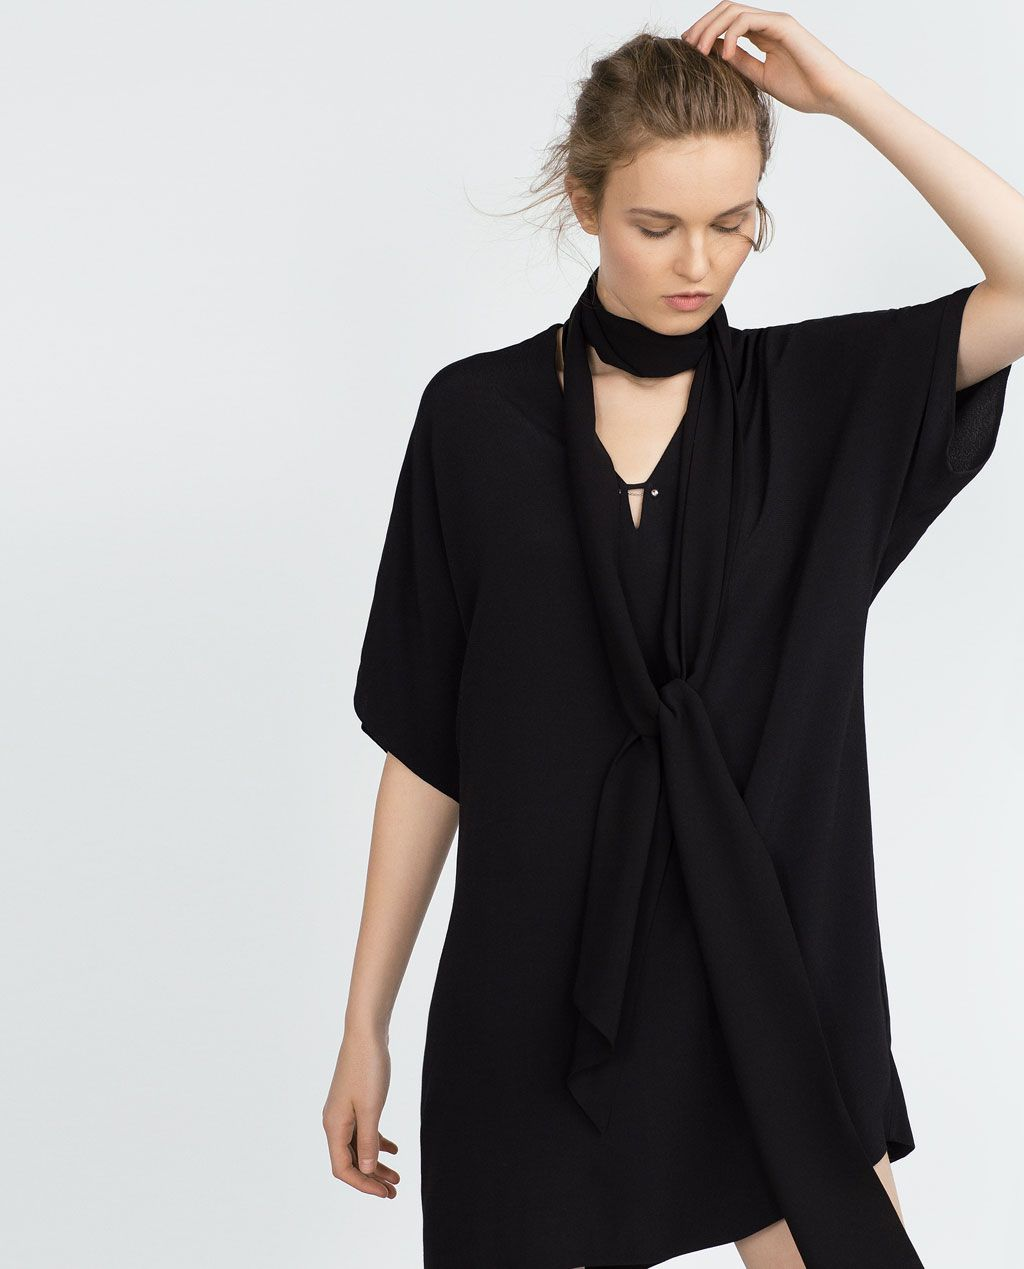 Zara collection aw vneck tunic dresses pinterest tunics